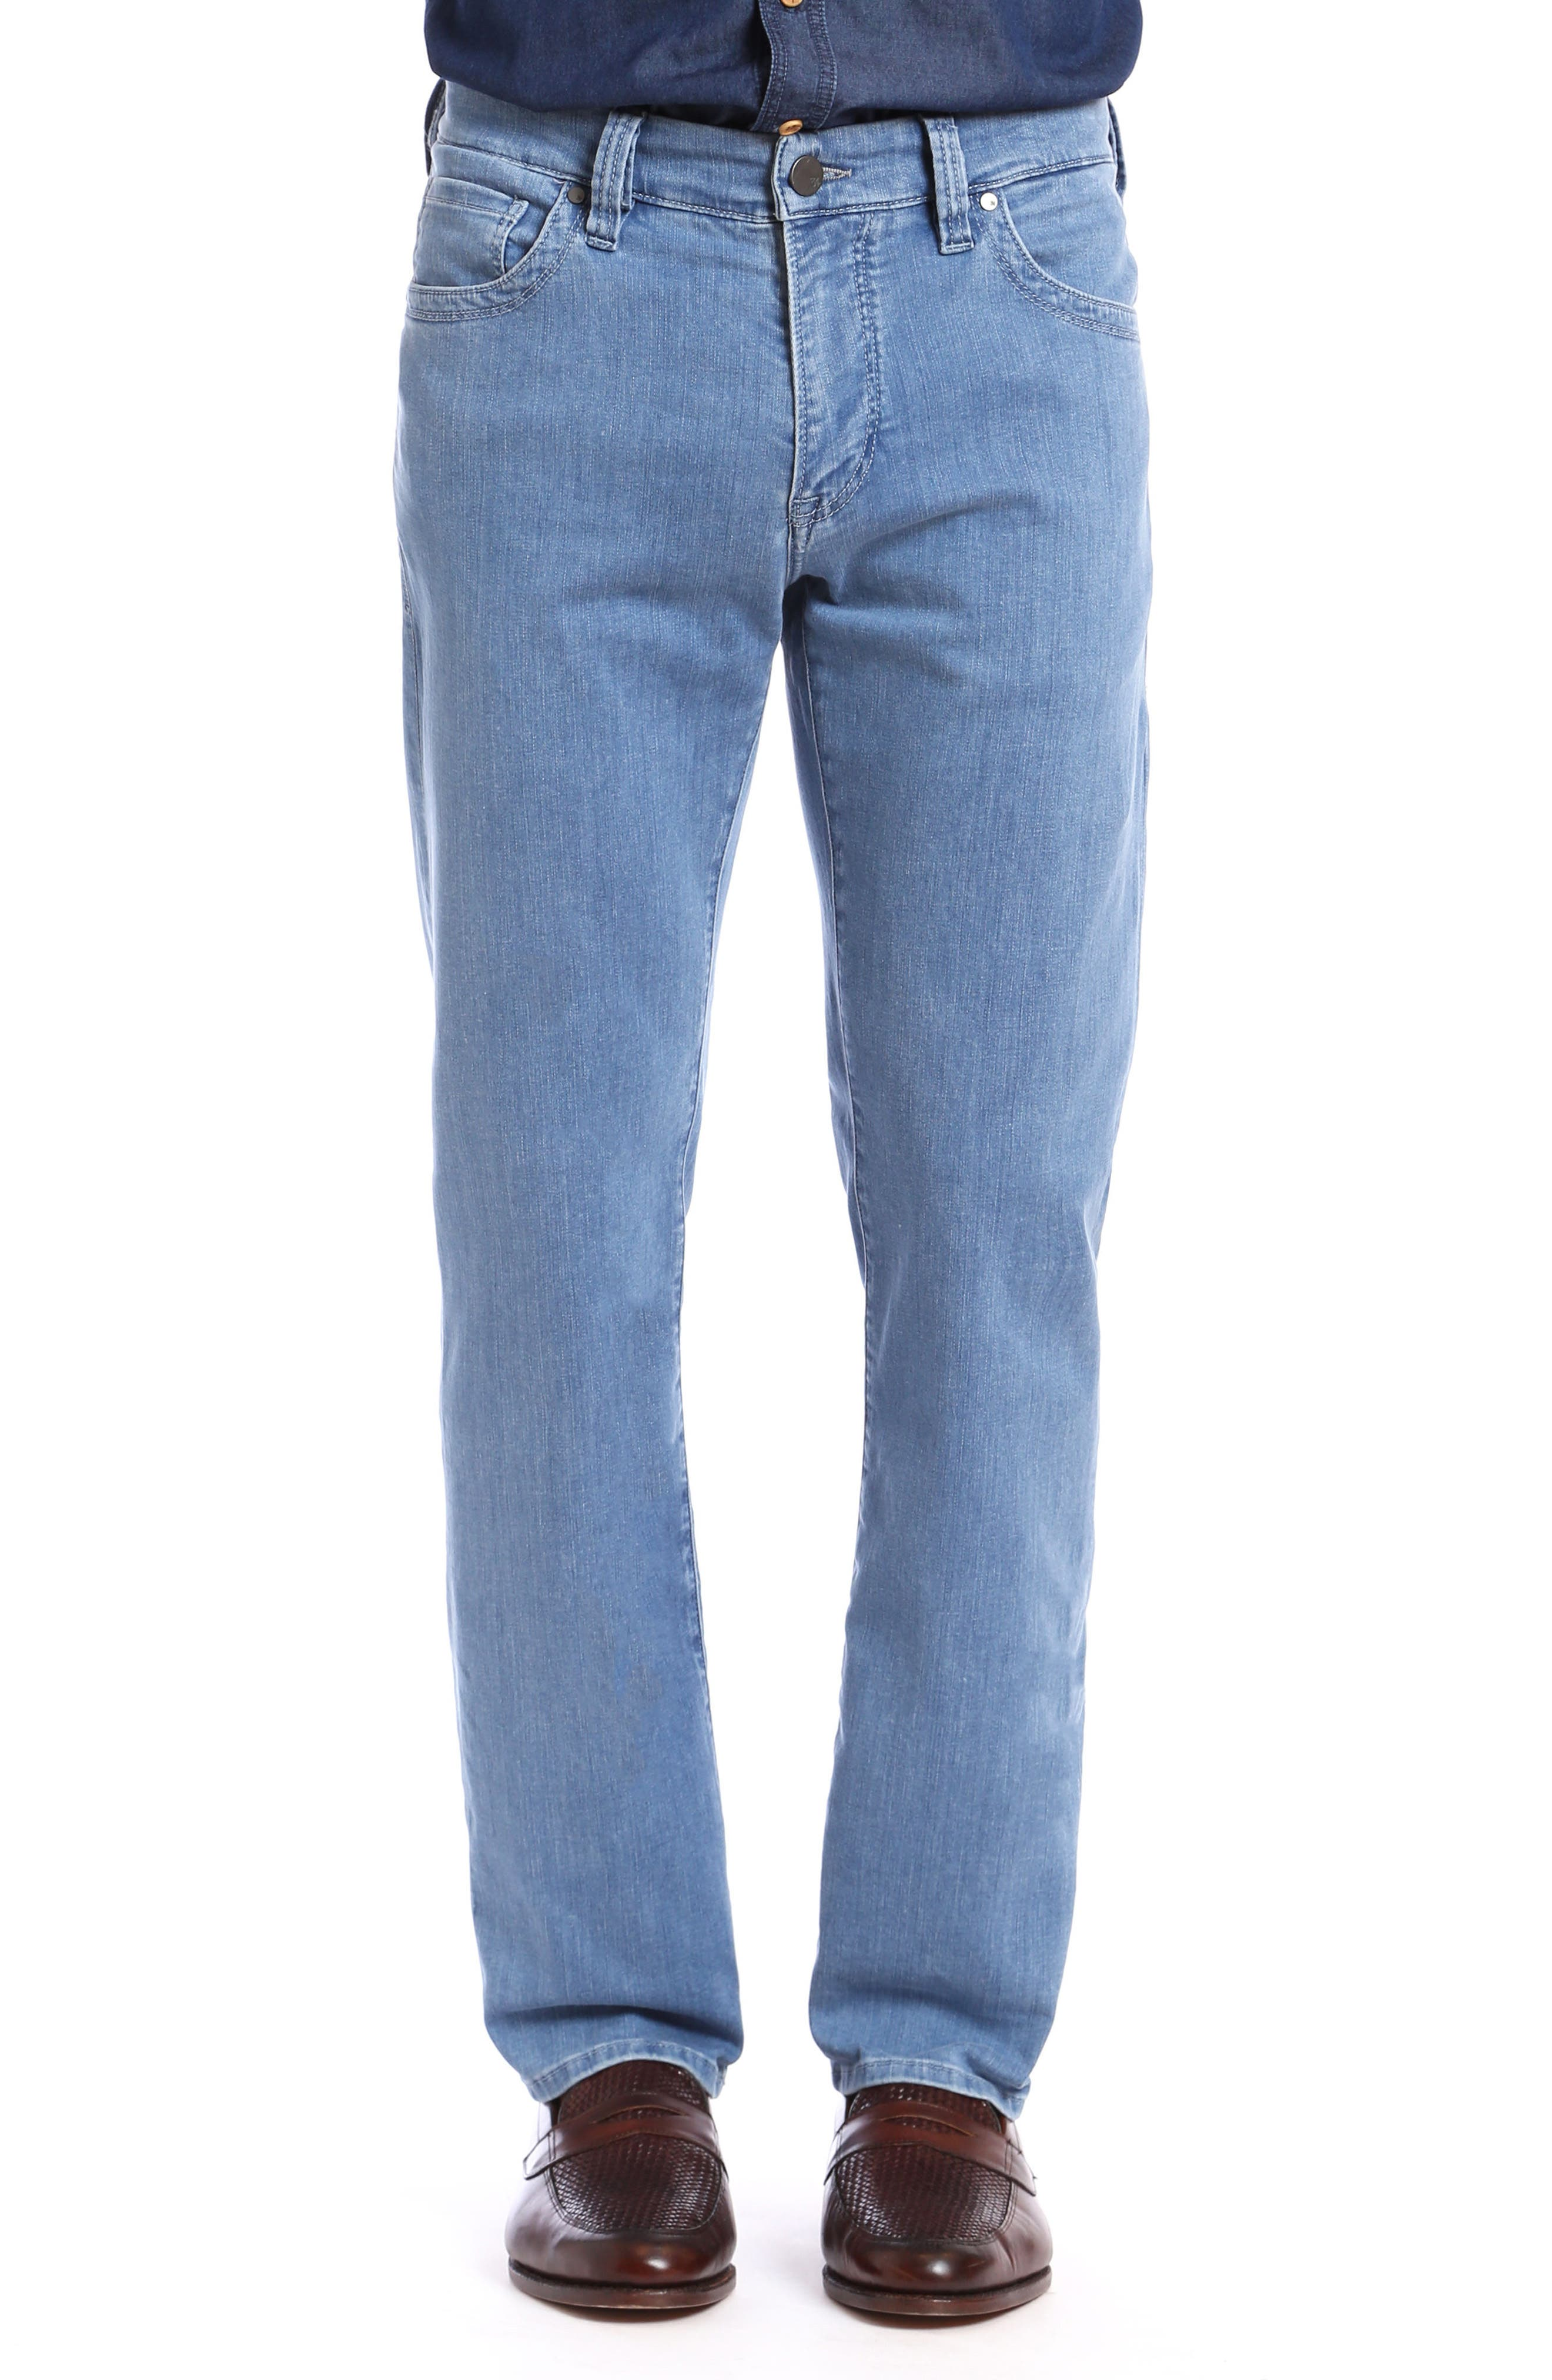 Charisma Relaxed Fit jeans,                             Main thumbnail 1, color,                             420